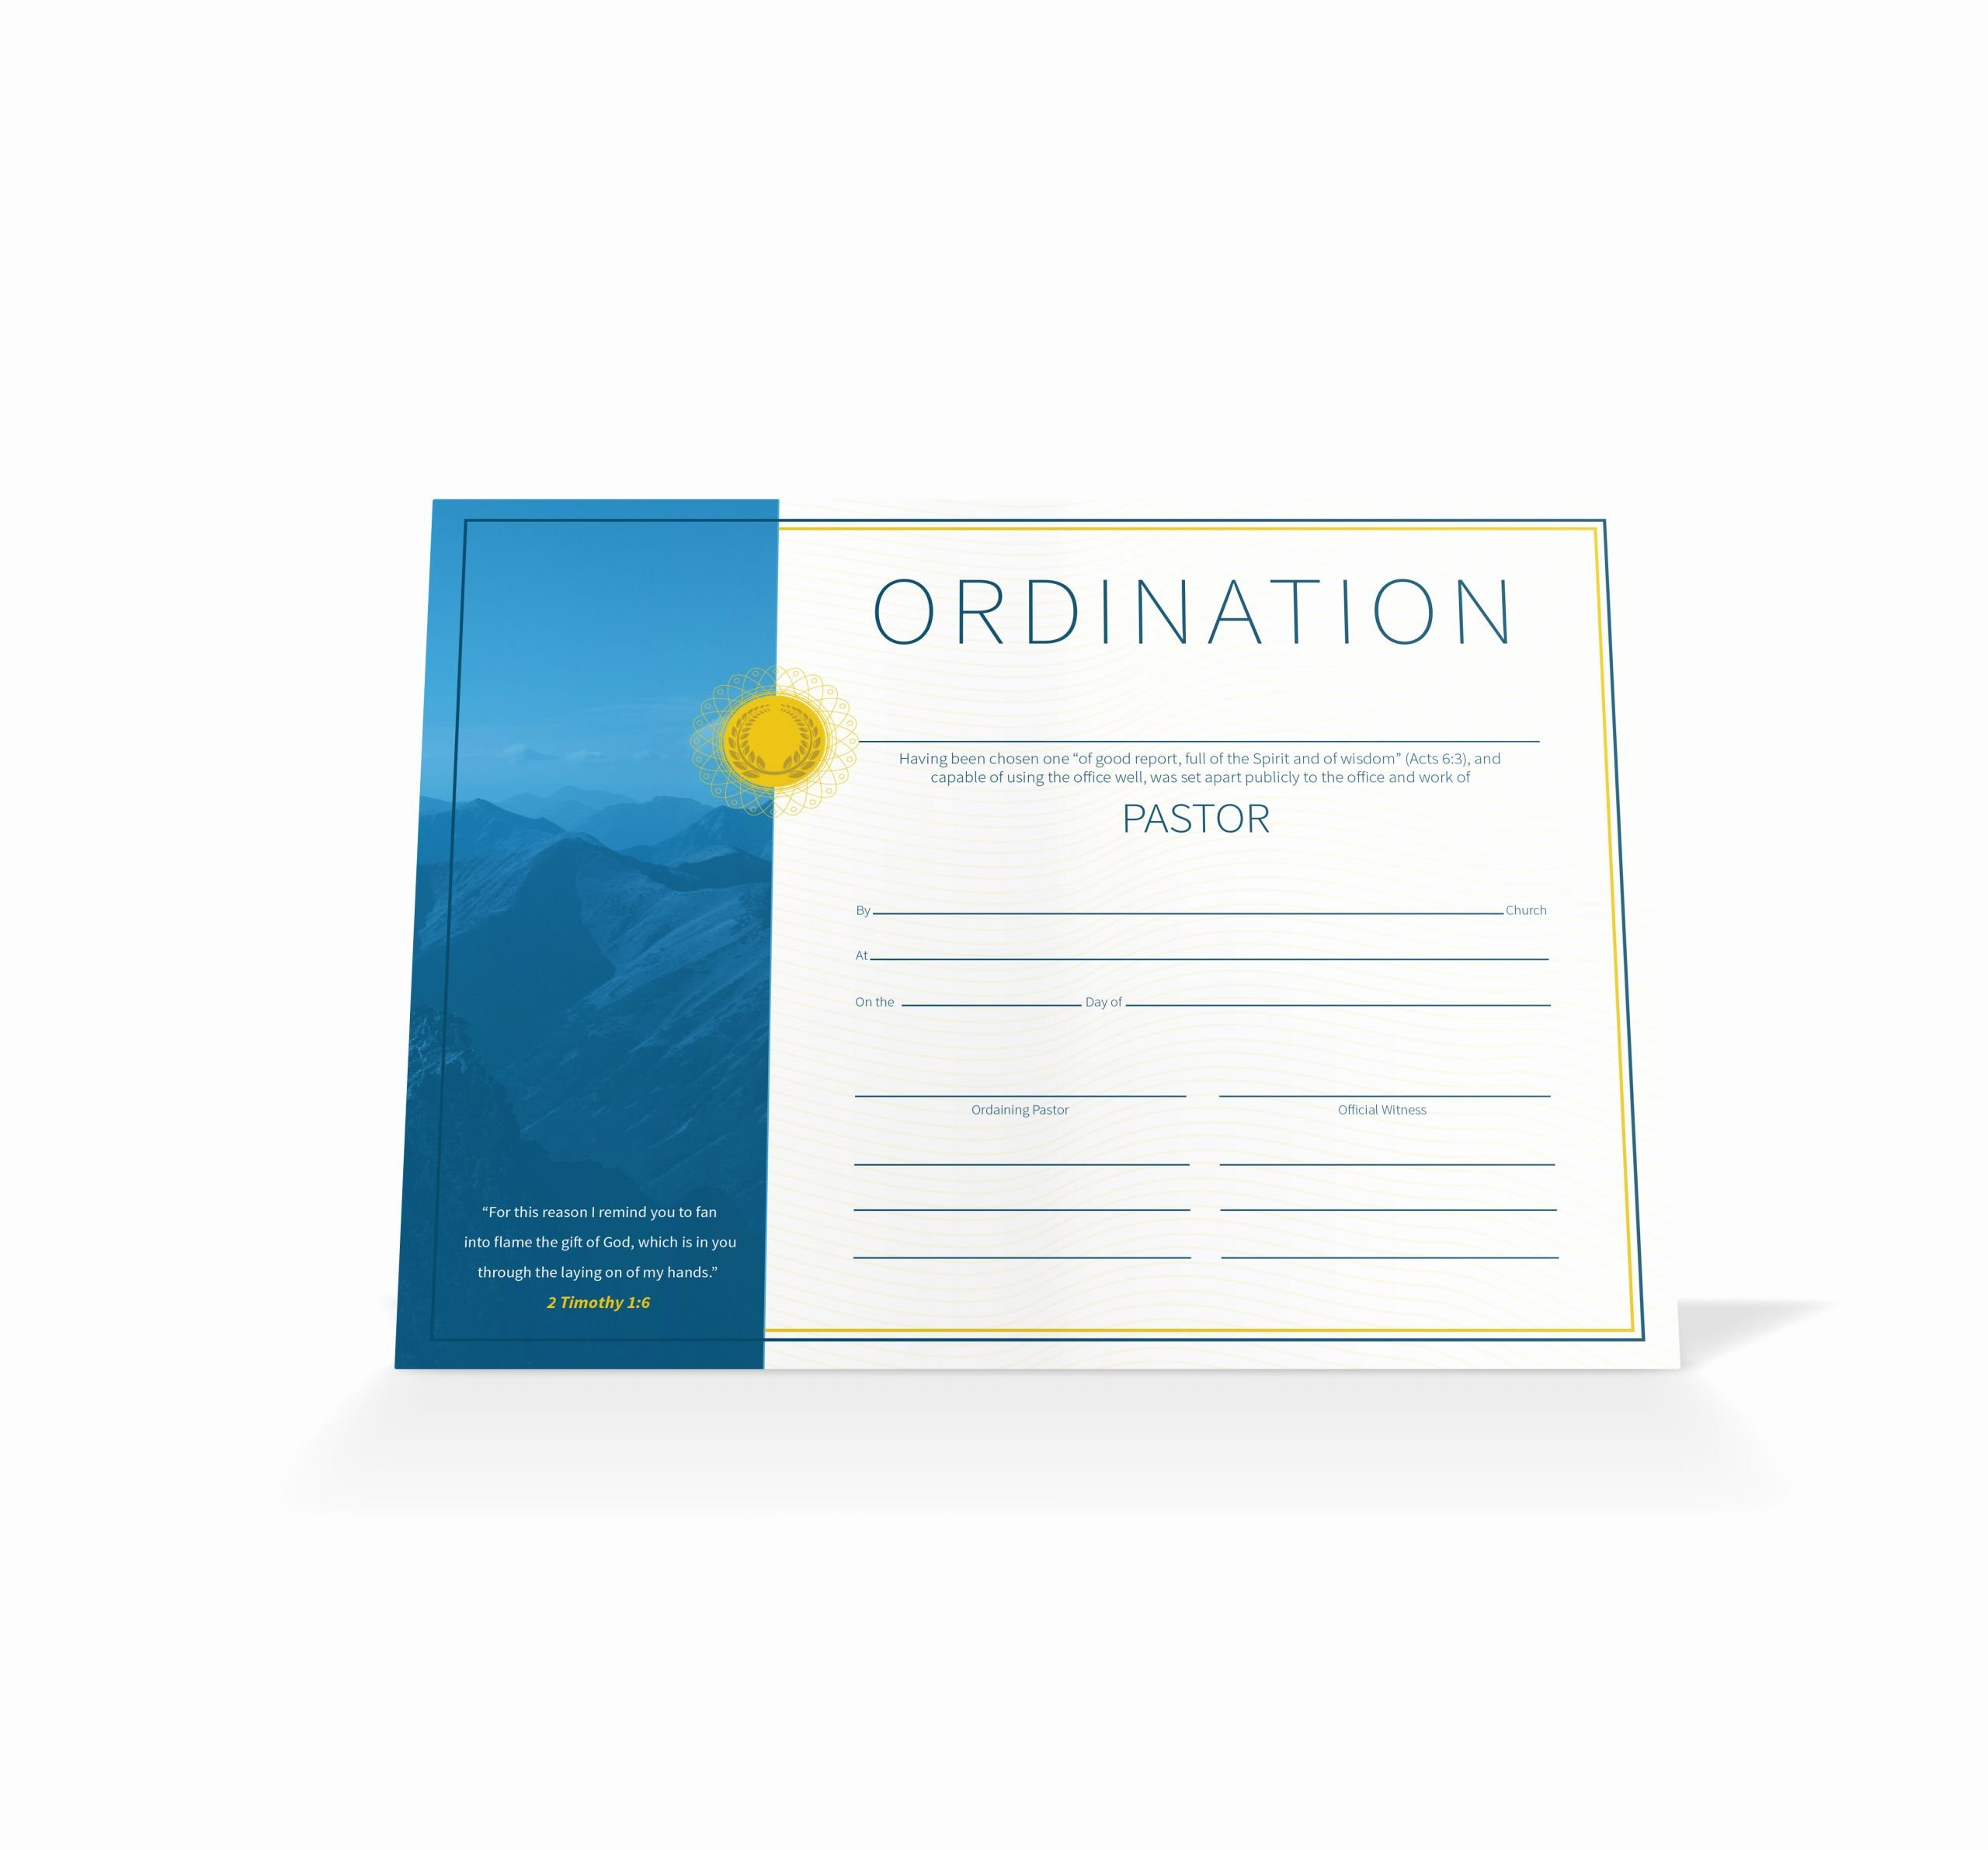 Certificate Of ordination Template New Pastor ordination Certificate Vineyard Digital Membership